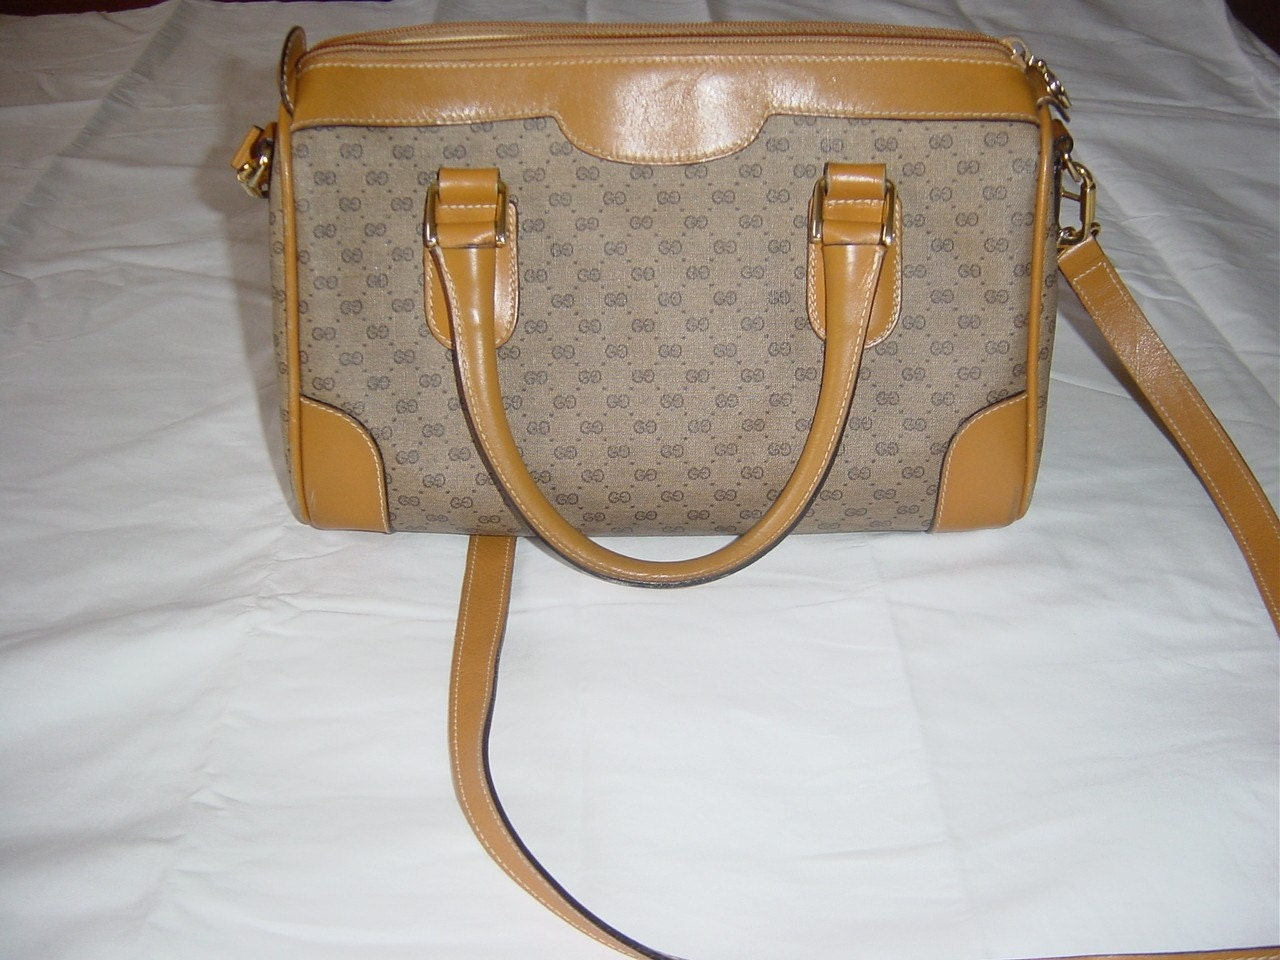 655dd4925ab0 Gucci Speedy Bag | Stanford Center for Opportunity Policy in Education